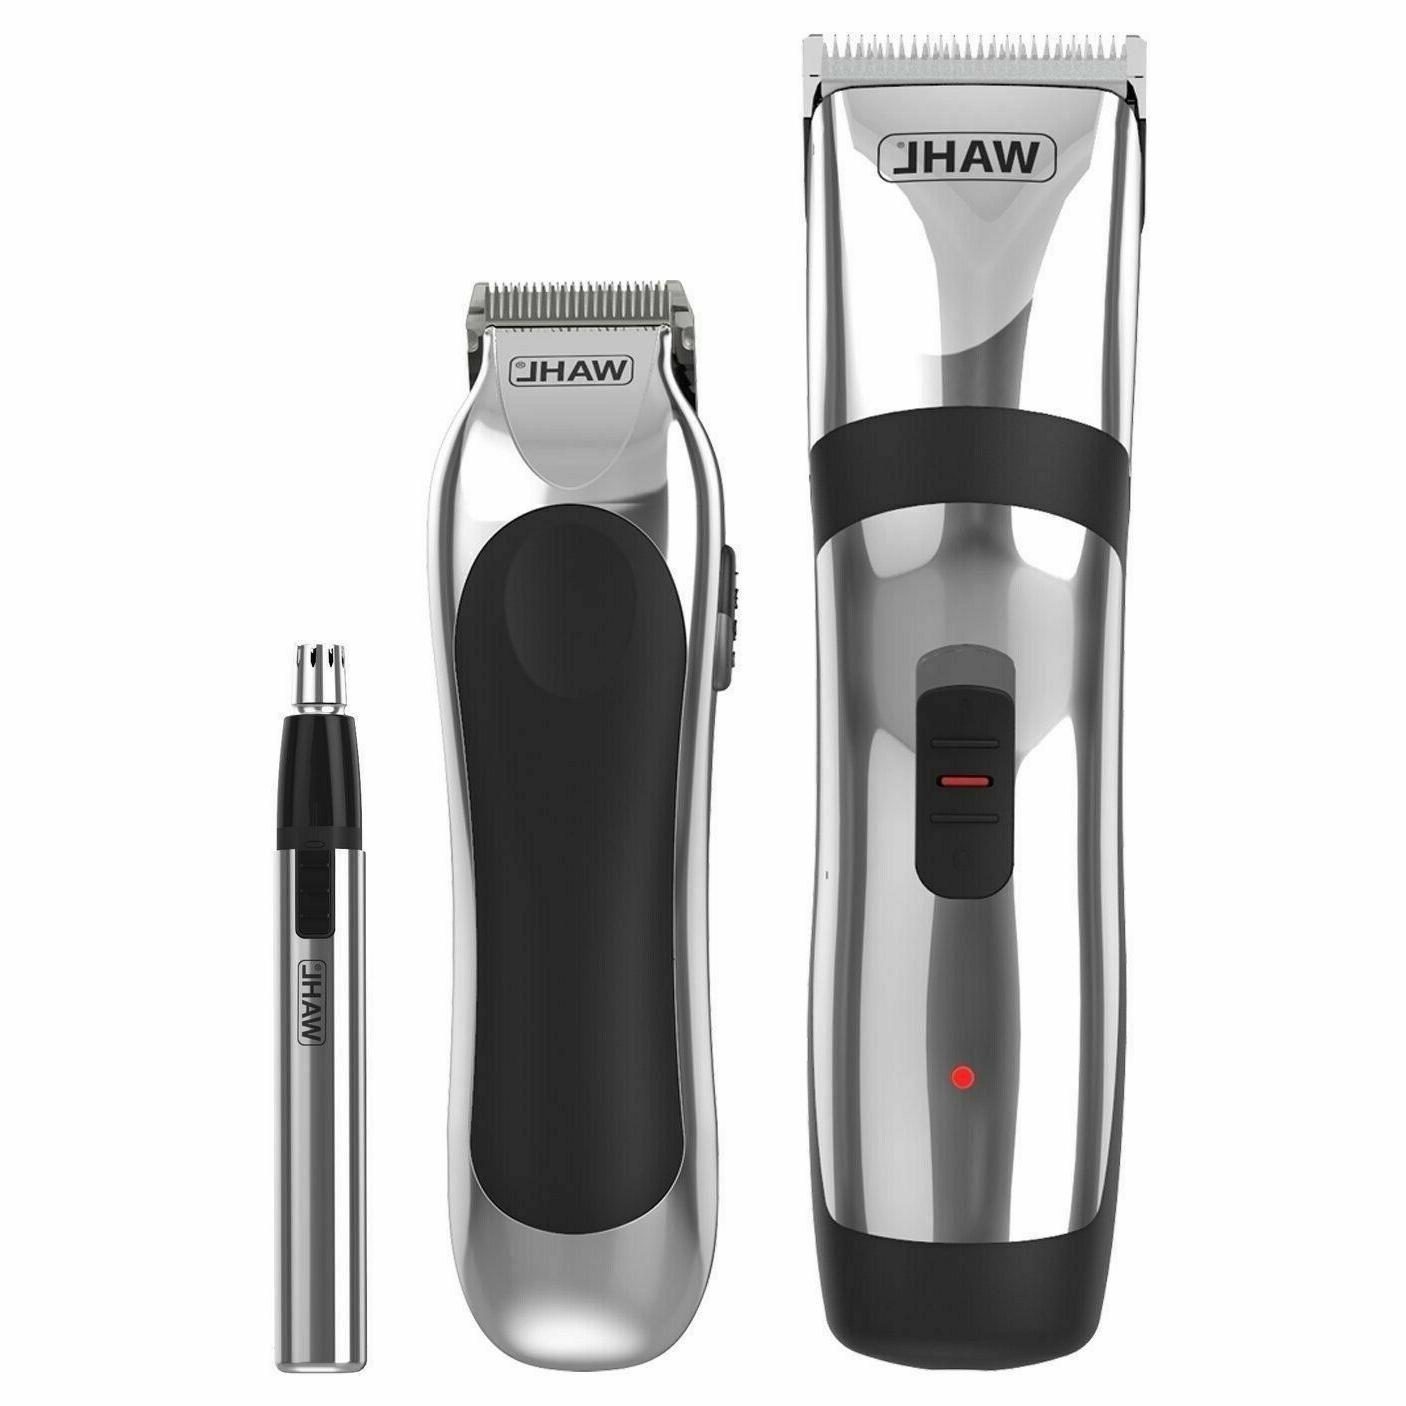 New Wahl Rechargeable Clipper Trimmer